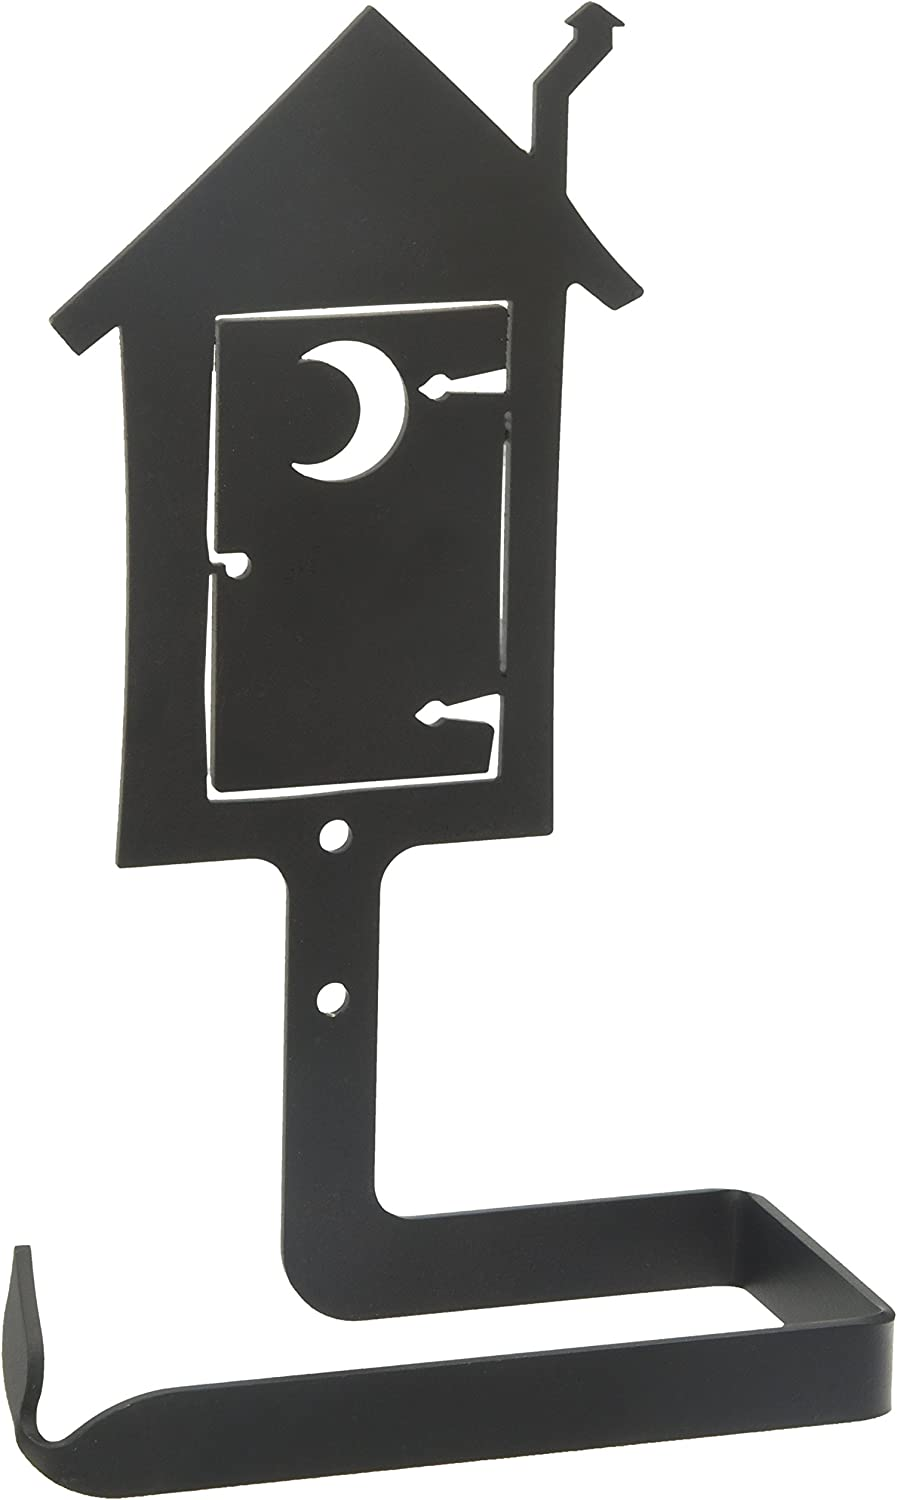 Wrought Iron Roller Style Toilet Tissue Paper Holder Outhouse Bathroom Decor